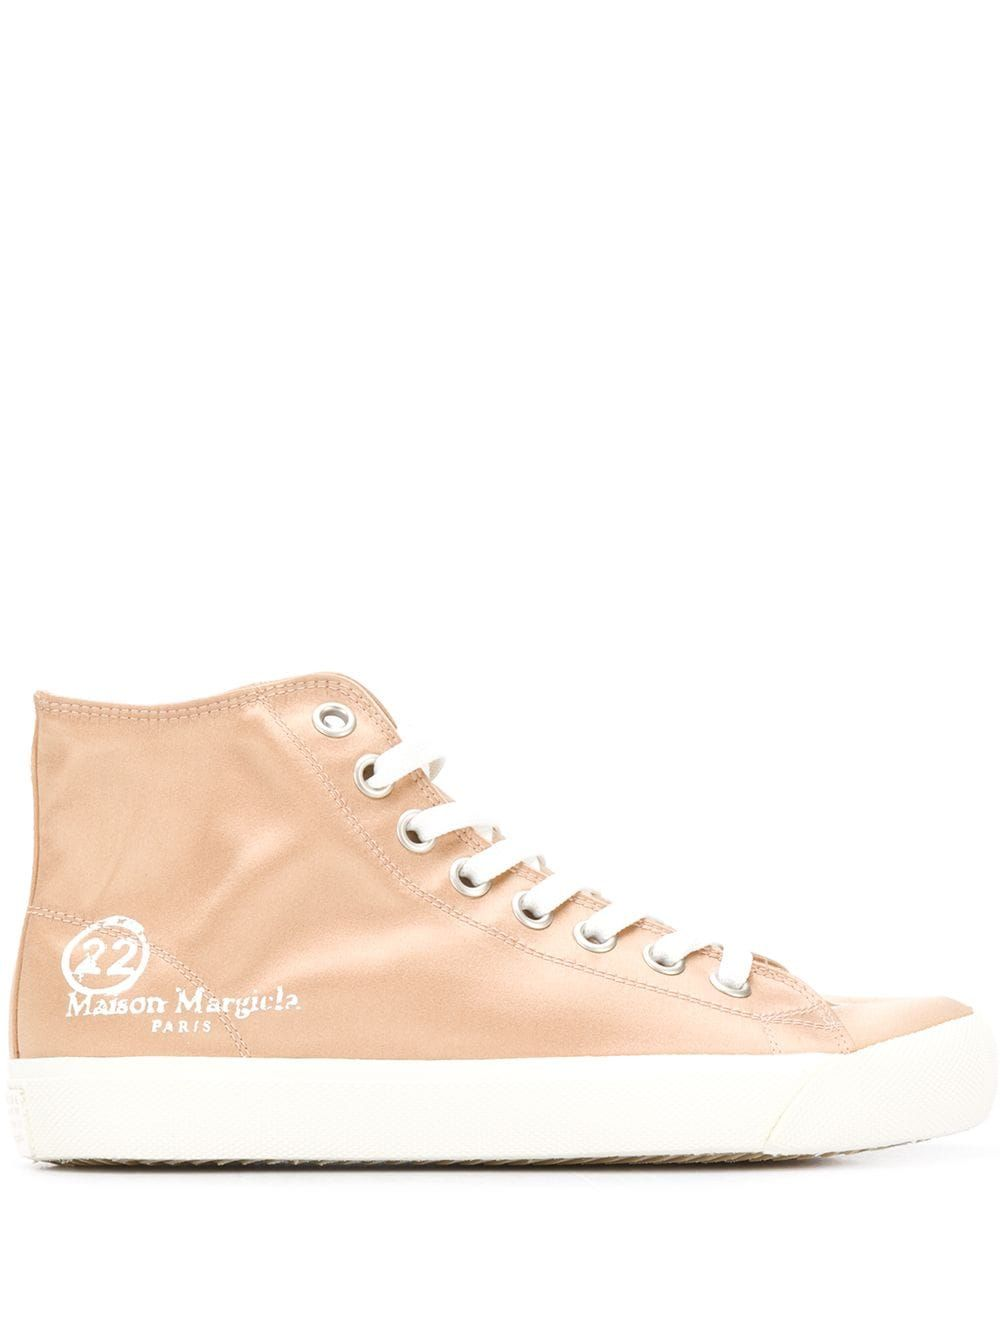 Maison Margiela MAISON MARGIELA WOMEN'S PINK LEATHER HI TOP SNEAKERS